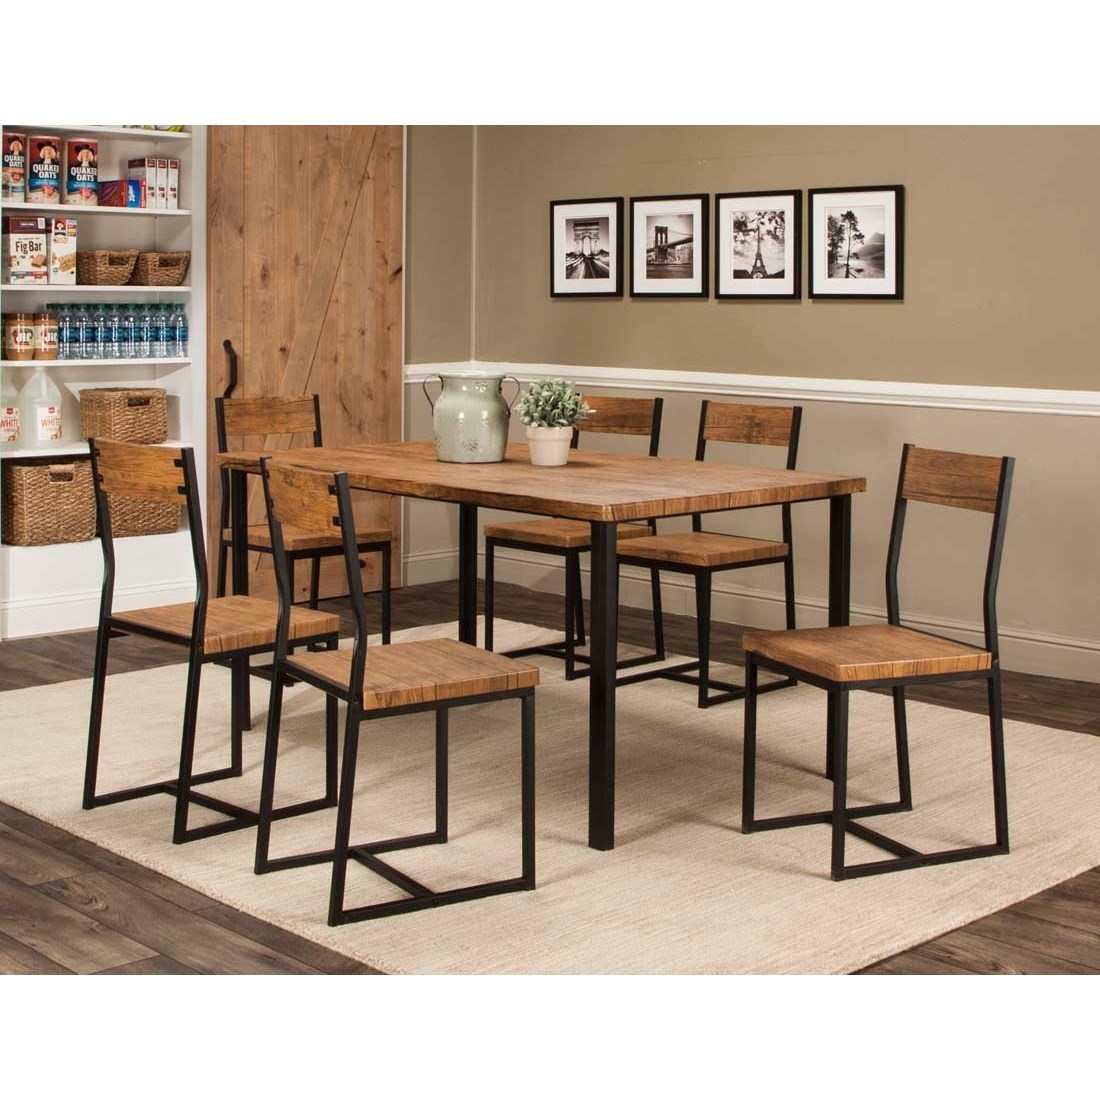 Adler 7-Piece Table and Chair Set by Cramco, Inc at Value City Furniture